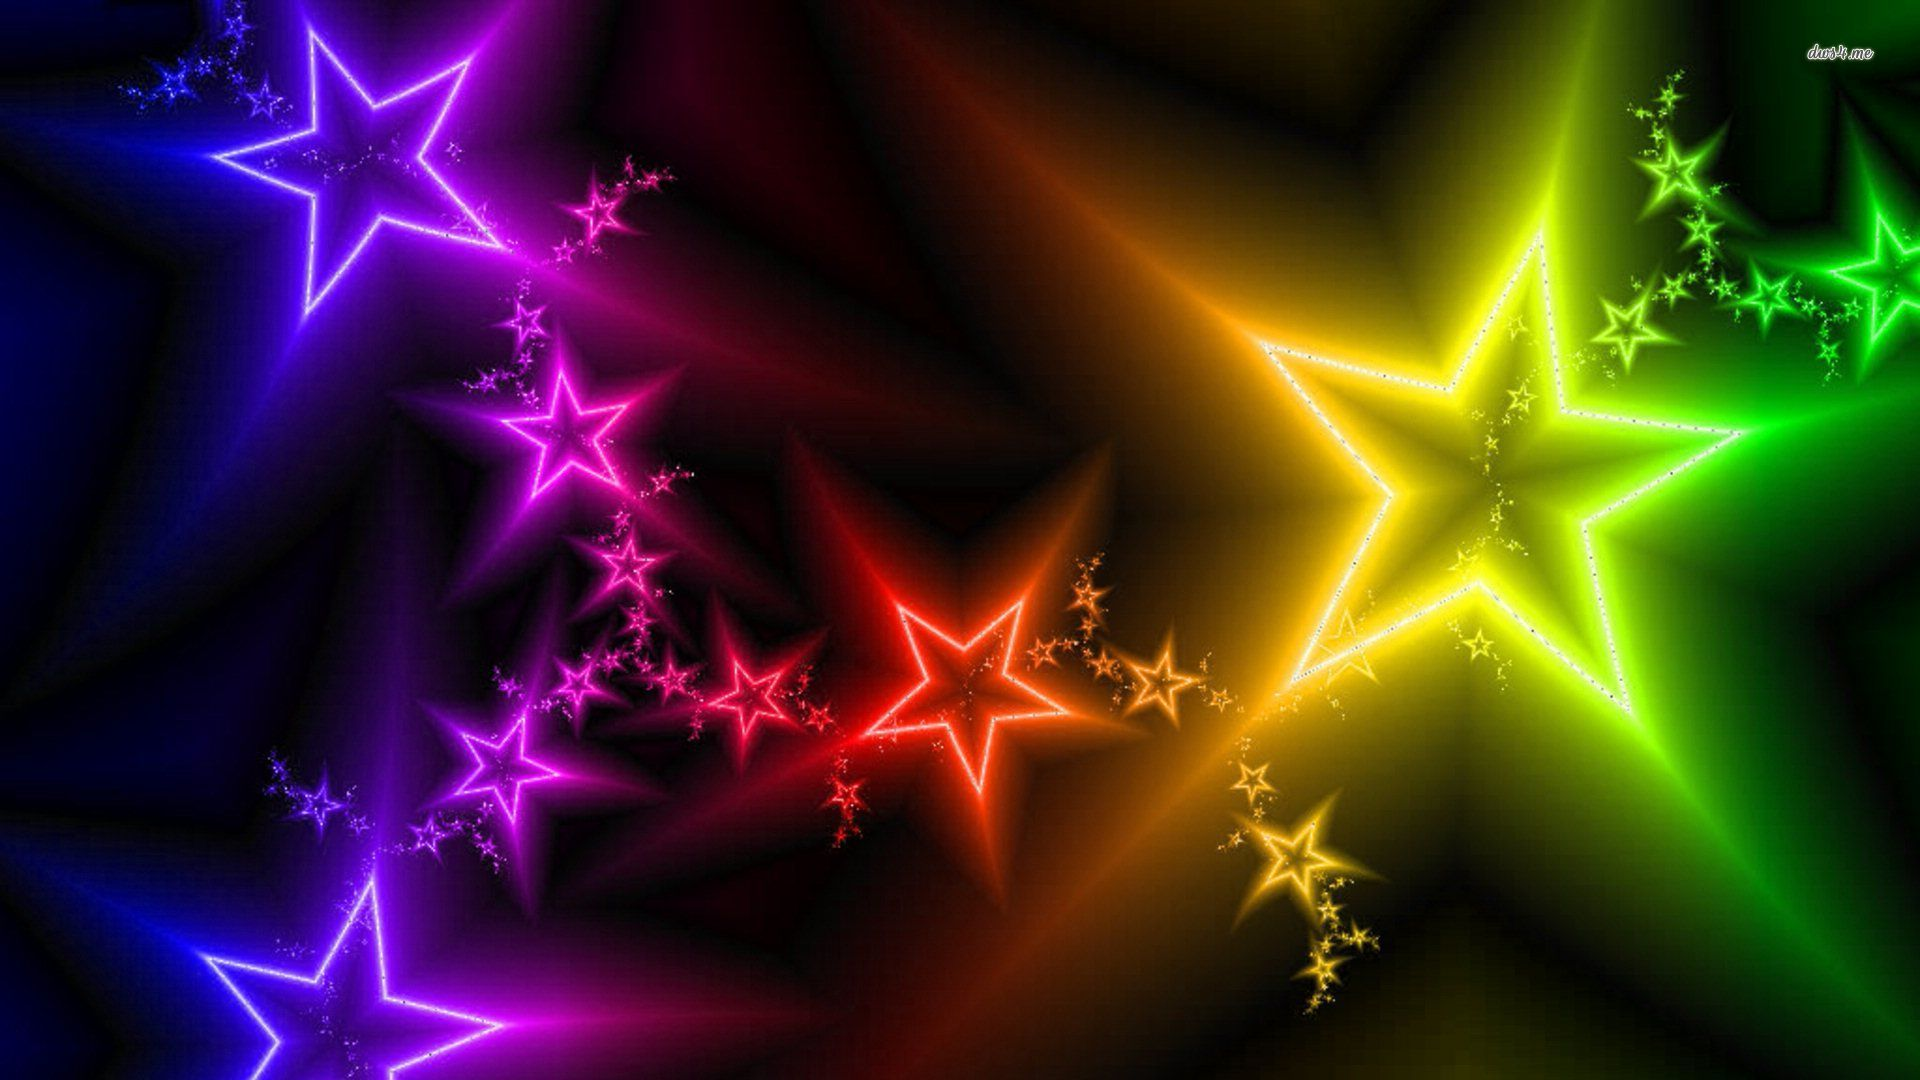 Backgrounds stars wallpapers adorable